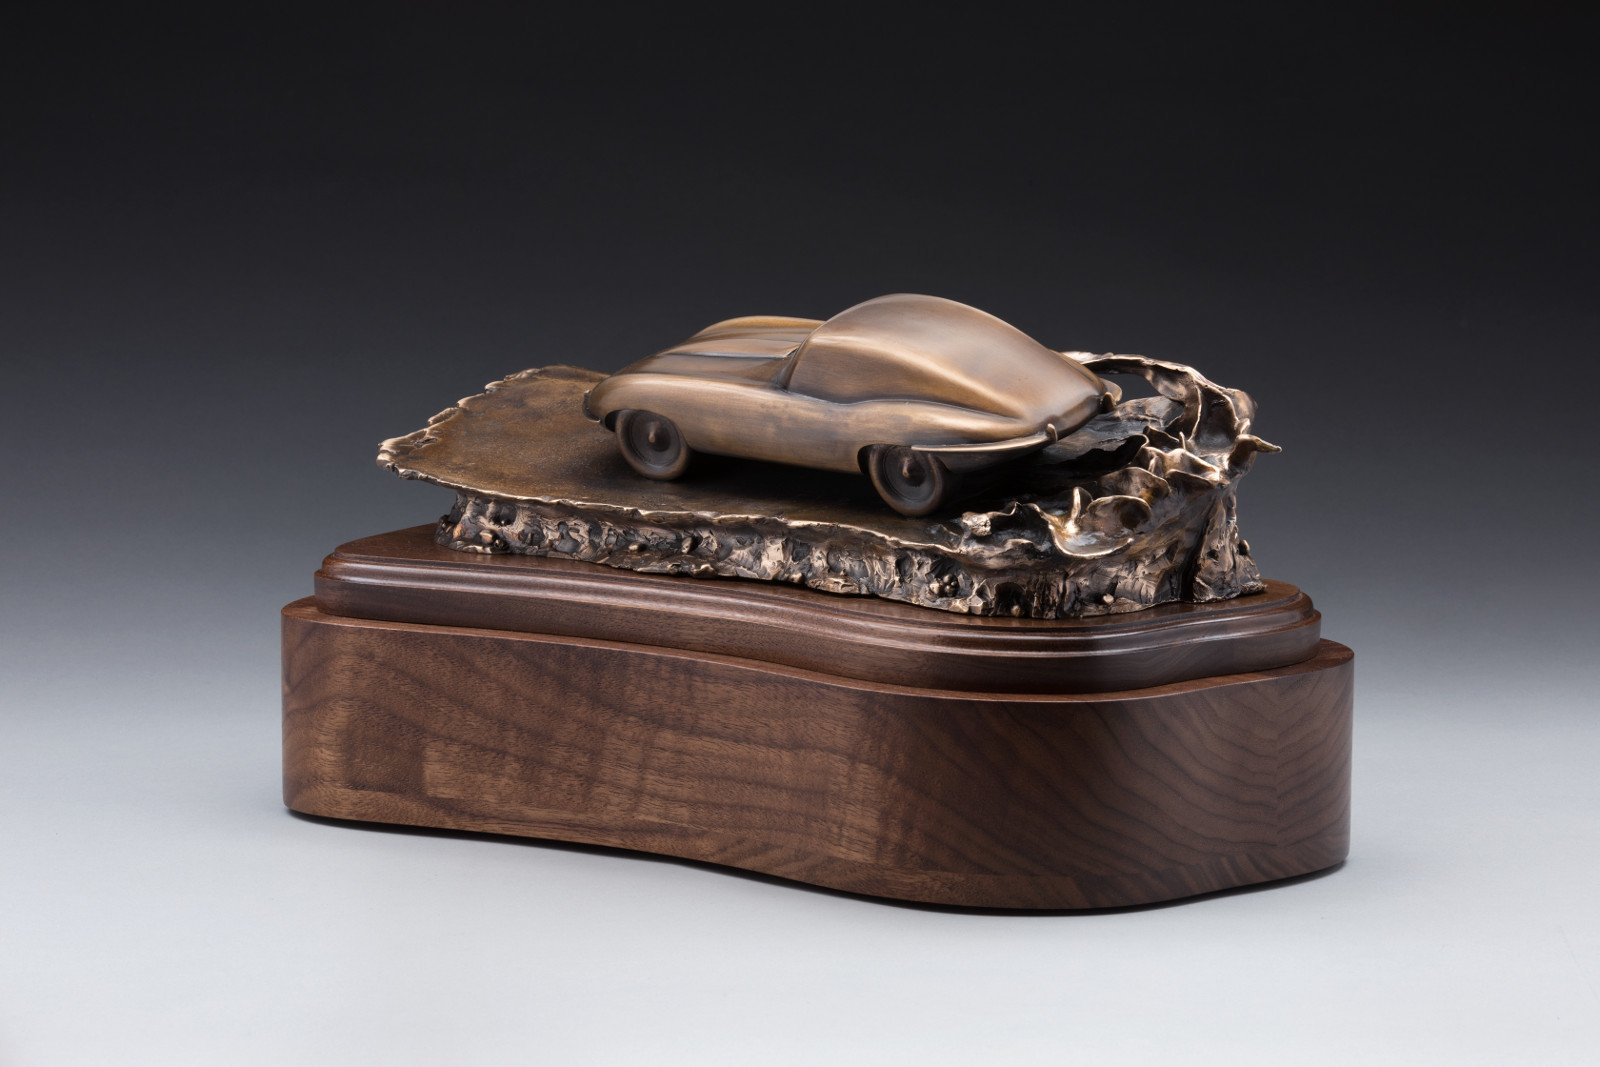 The Leaping Cat: Jaguar-Inspired Cremation Urn